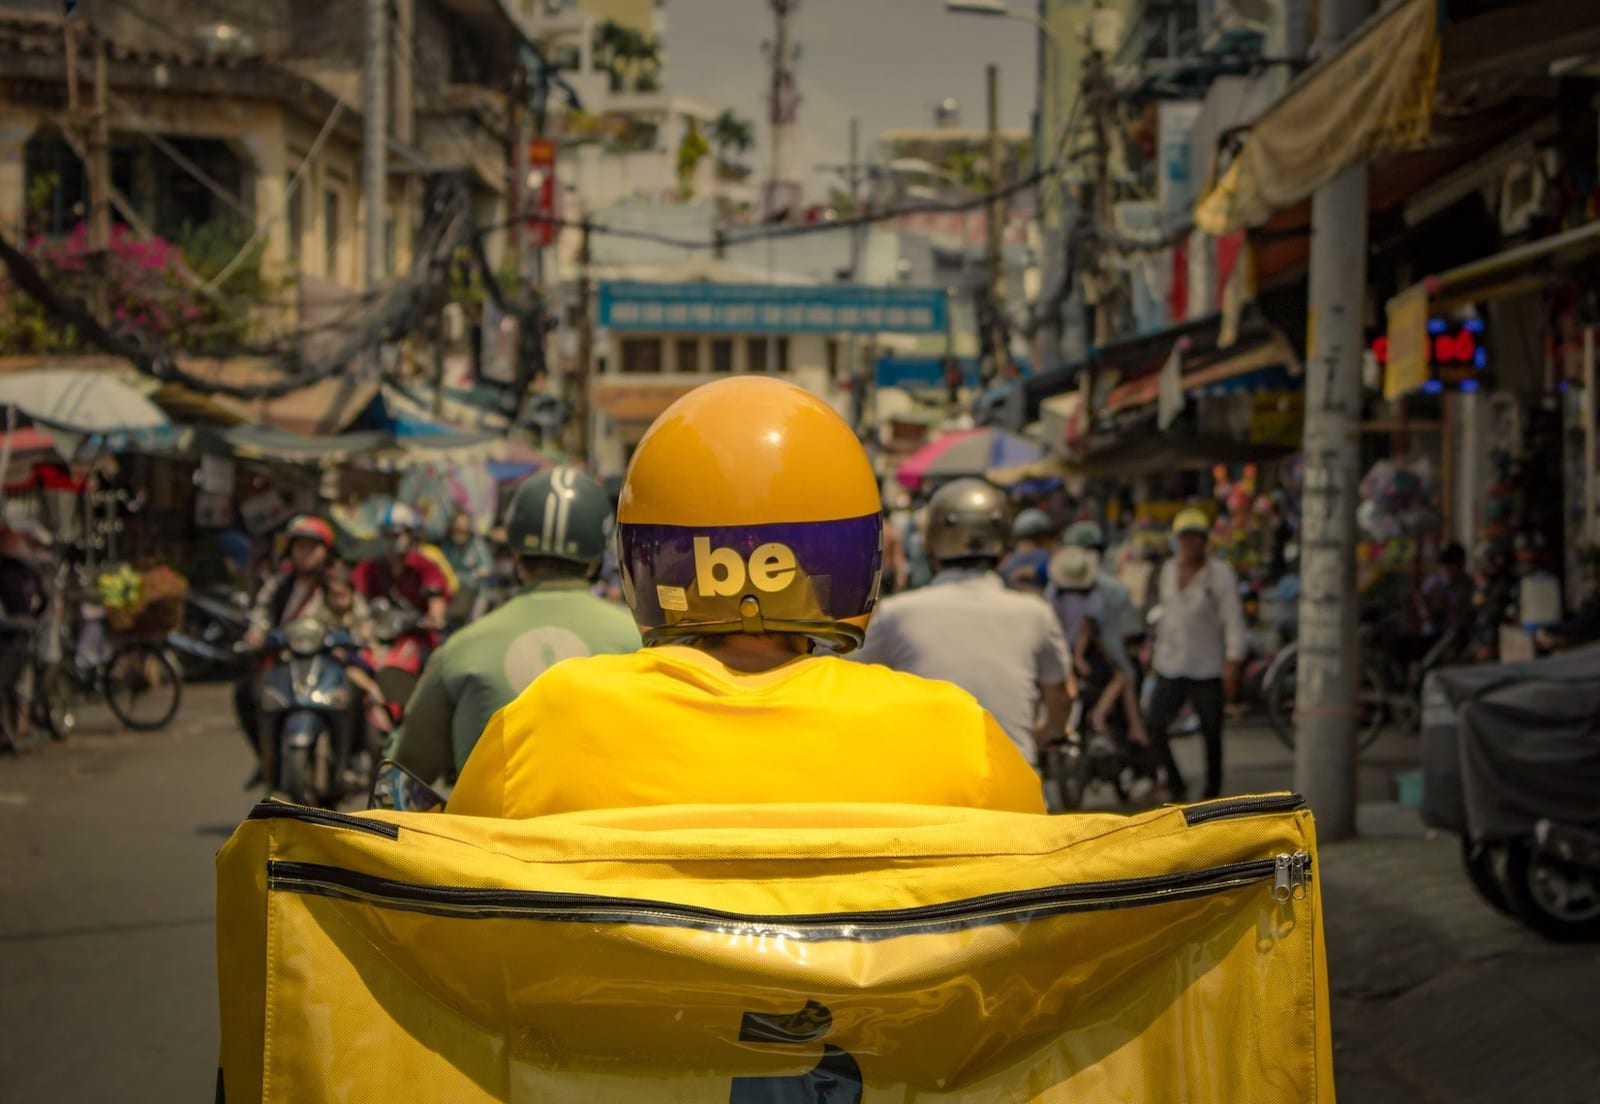 Image of a Be driver in Vietnam